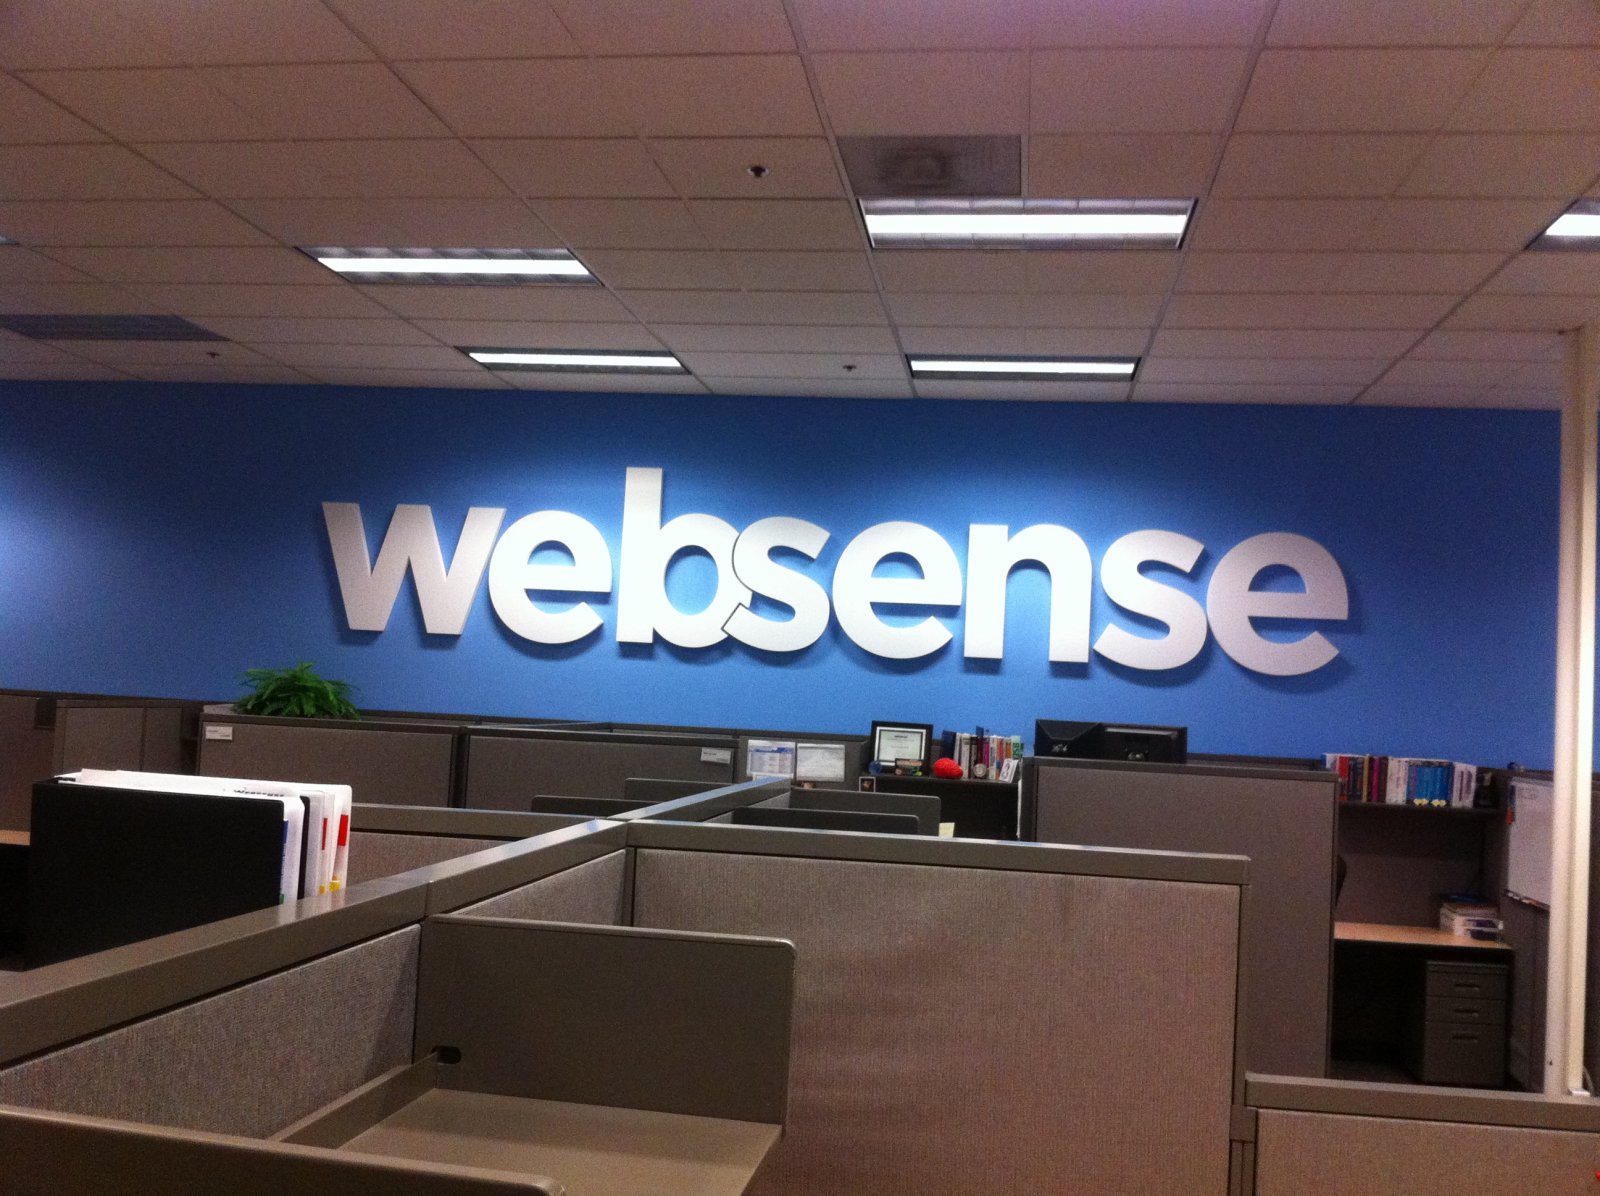 Websense Office Sign - Sorrento Valley, San Diego